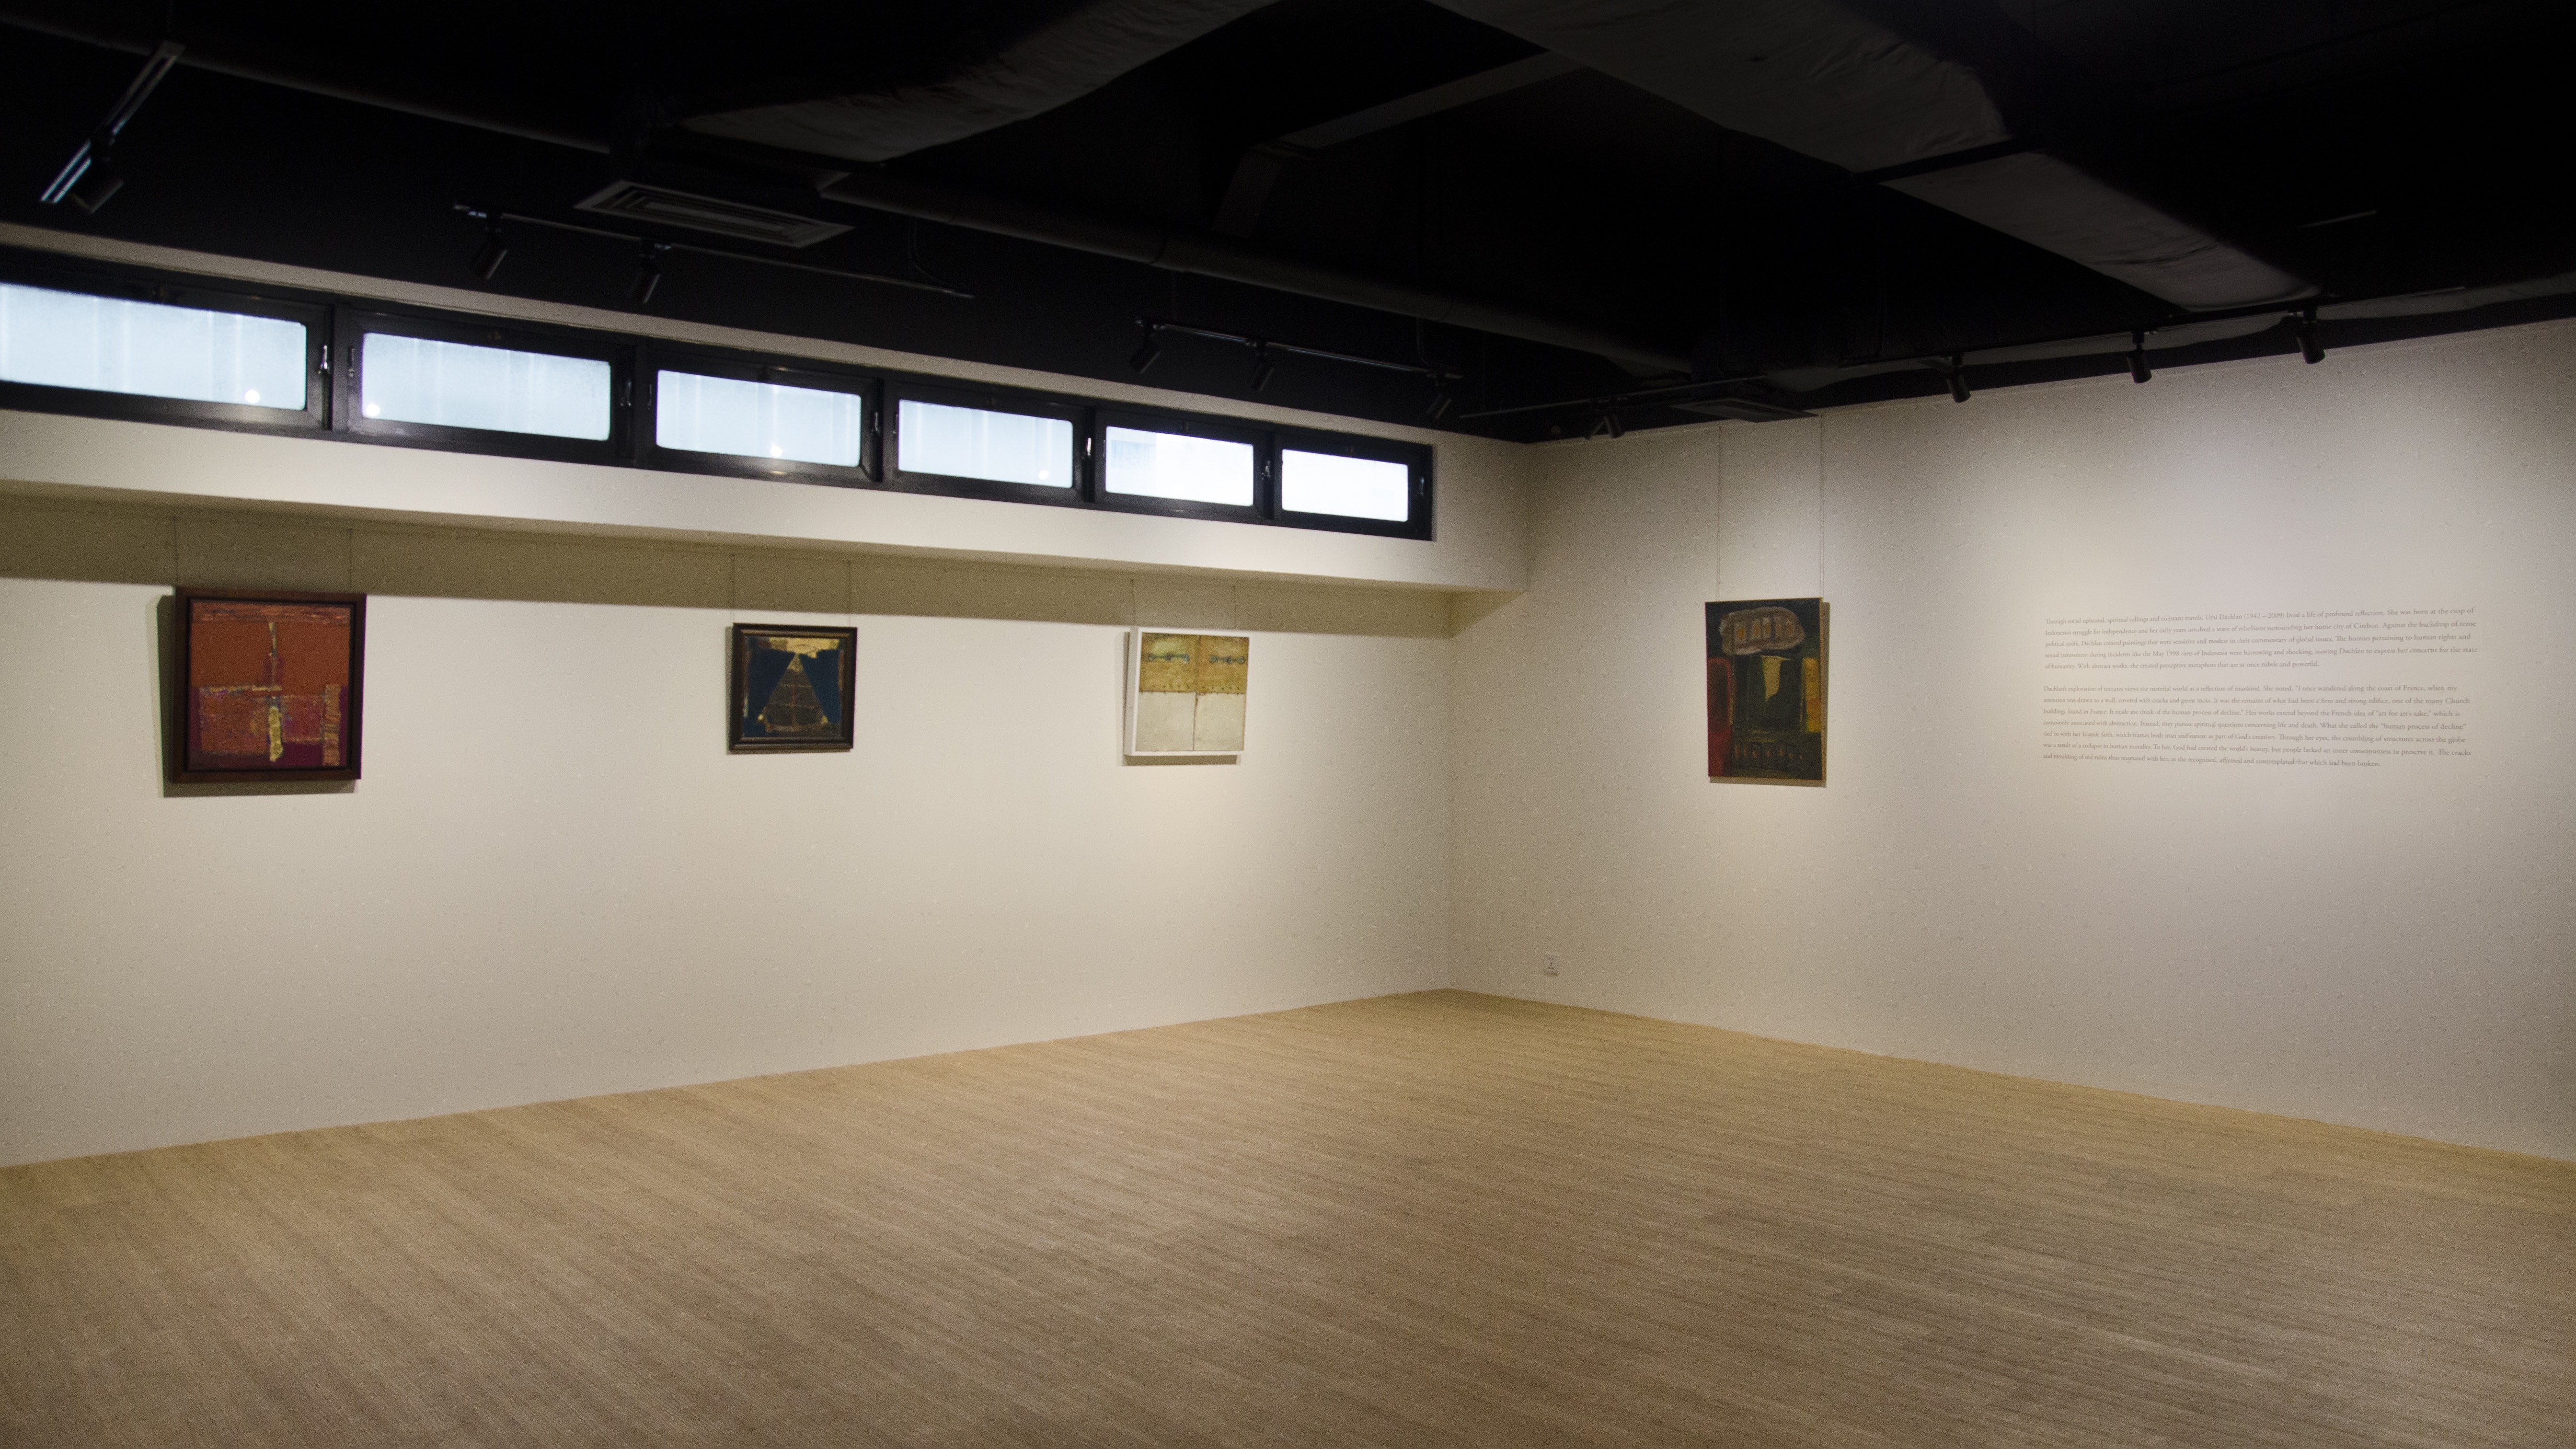 An image of the gallery set up for the exhibition: Umi Dachlan: Metaphors for Humanity